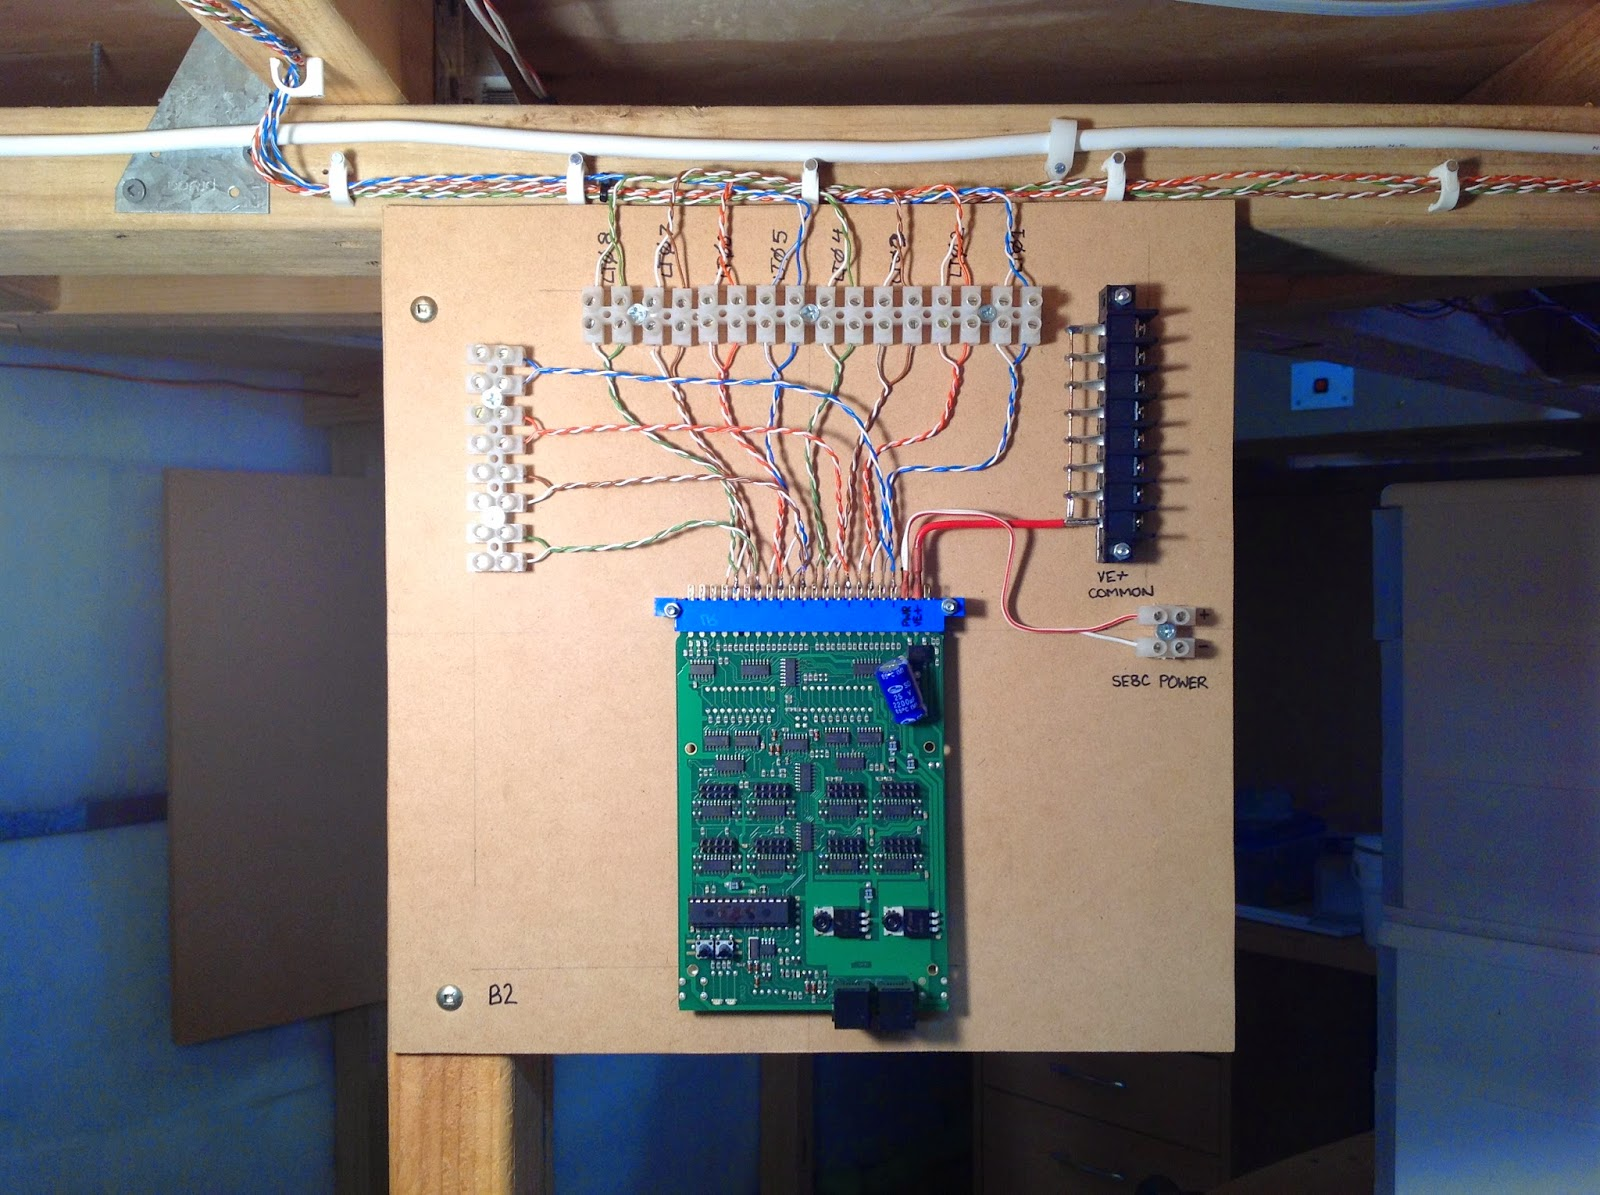 Jlandt Railroad March 2015 Troubleshooting Wiring Problems With The Loconet So Here Is Another Board Completed Next Step To Make Up Cable And Connect Existing Se8c Program It Into Jmri Tables